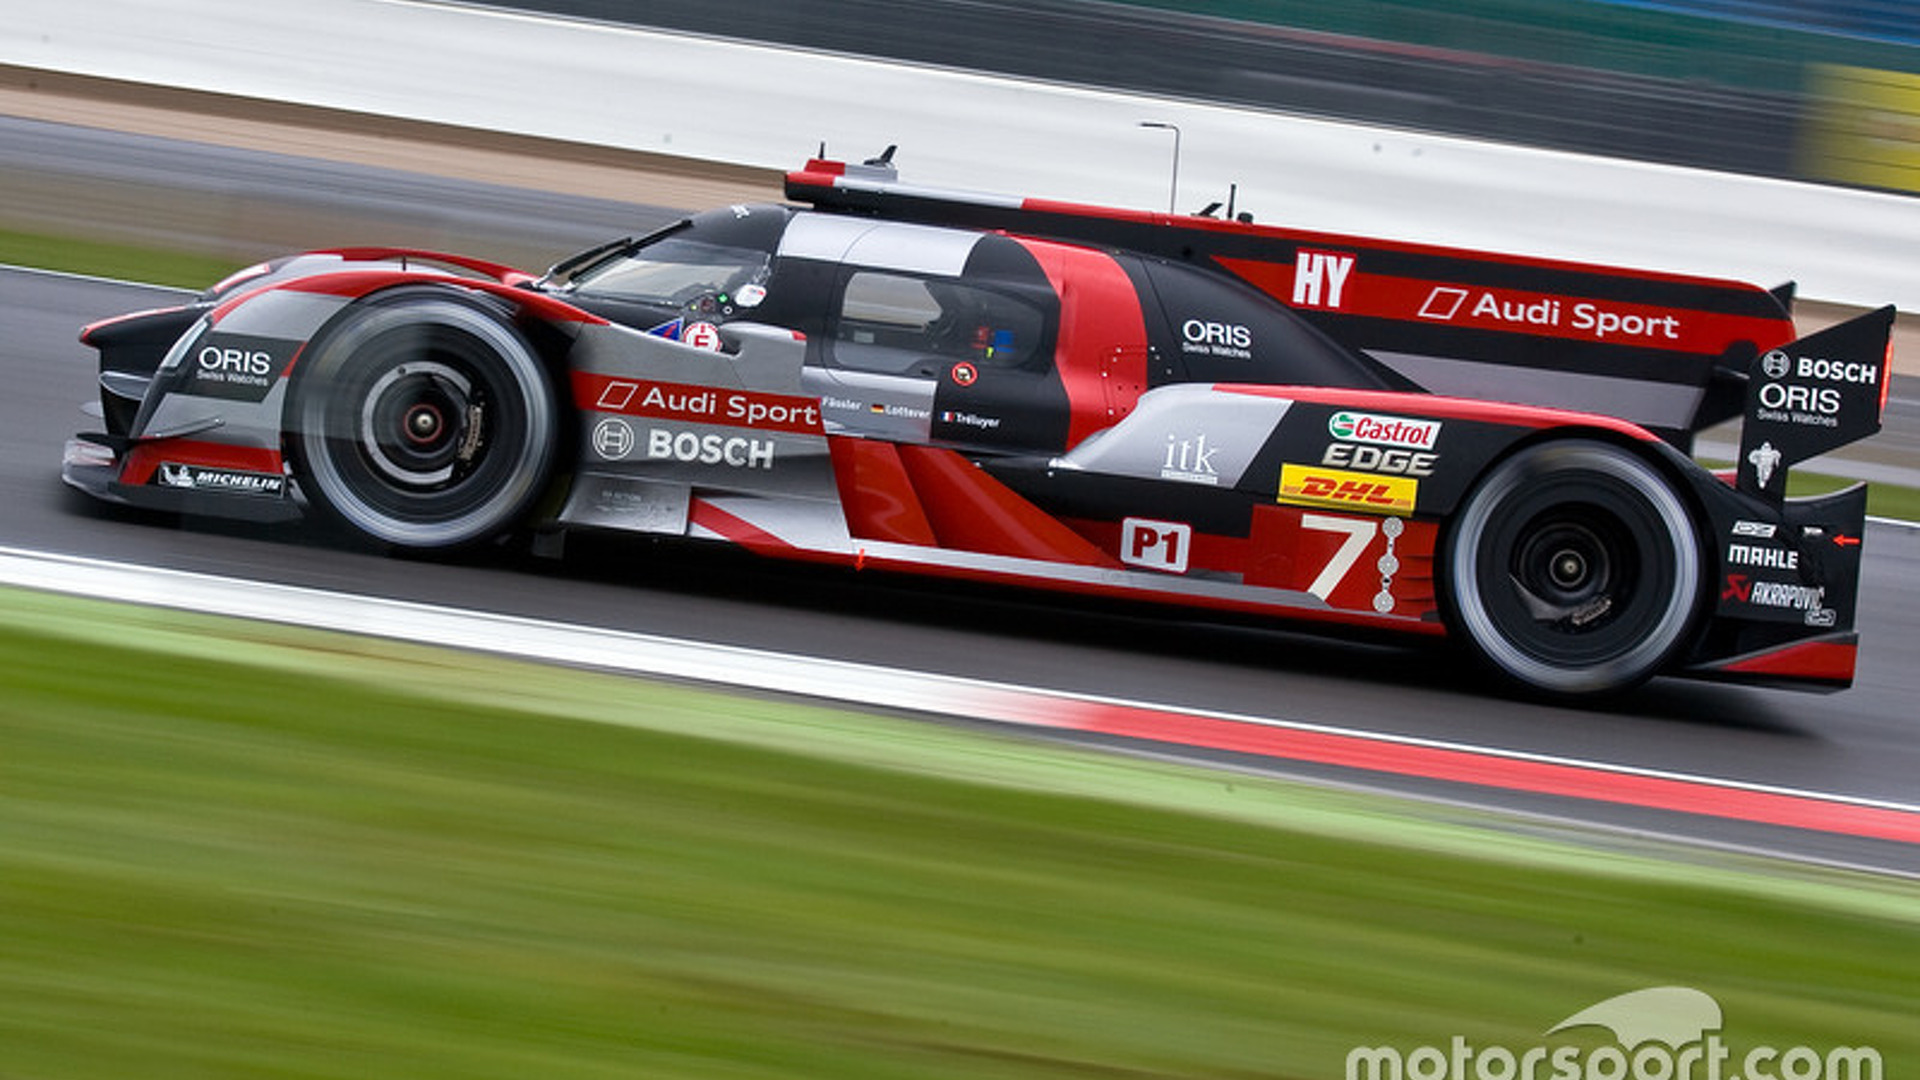 Audi to appeal Silverstone exclusion